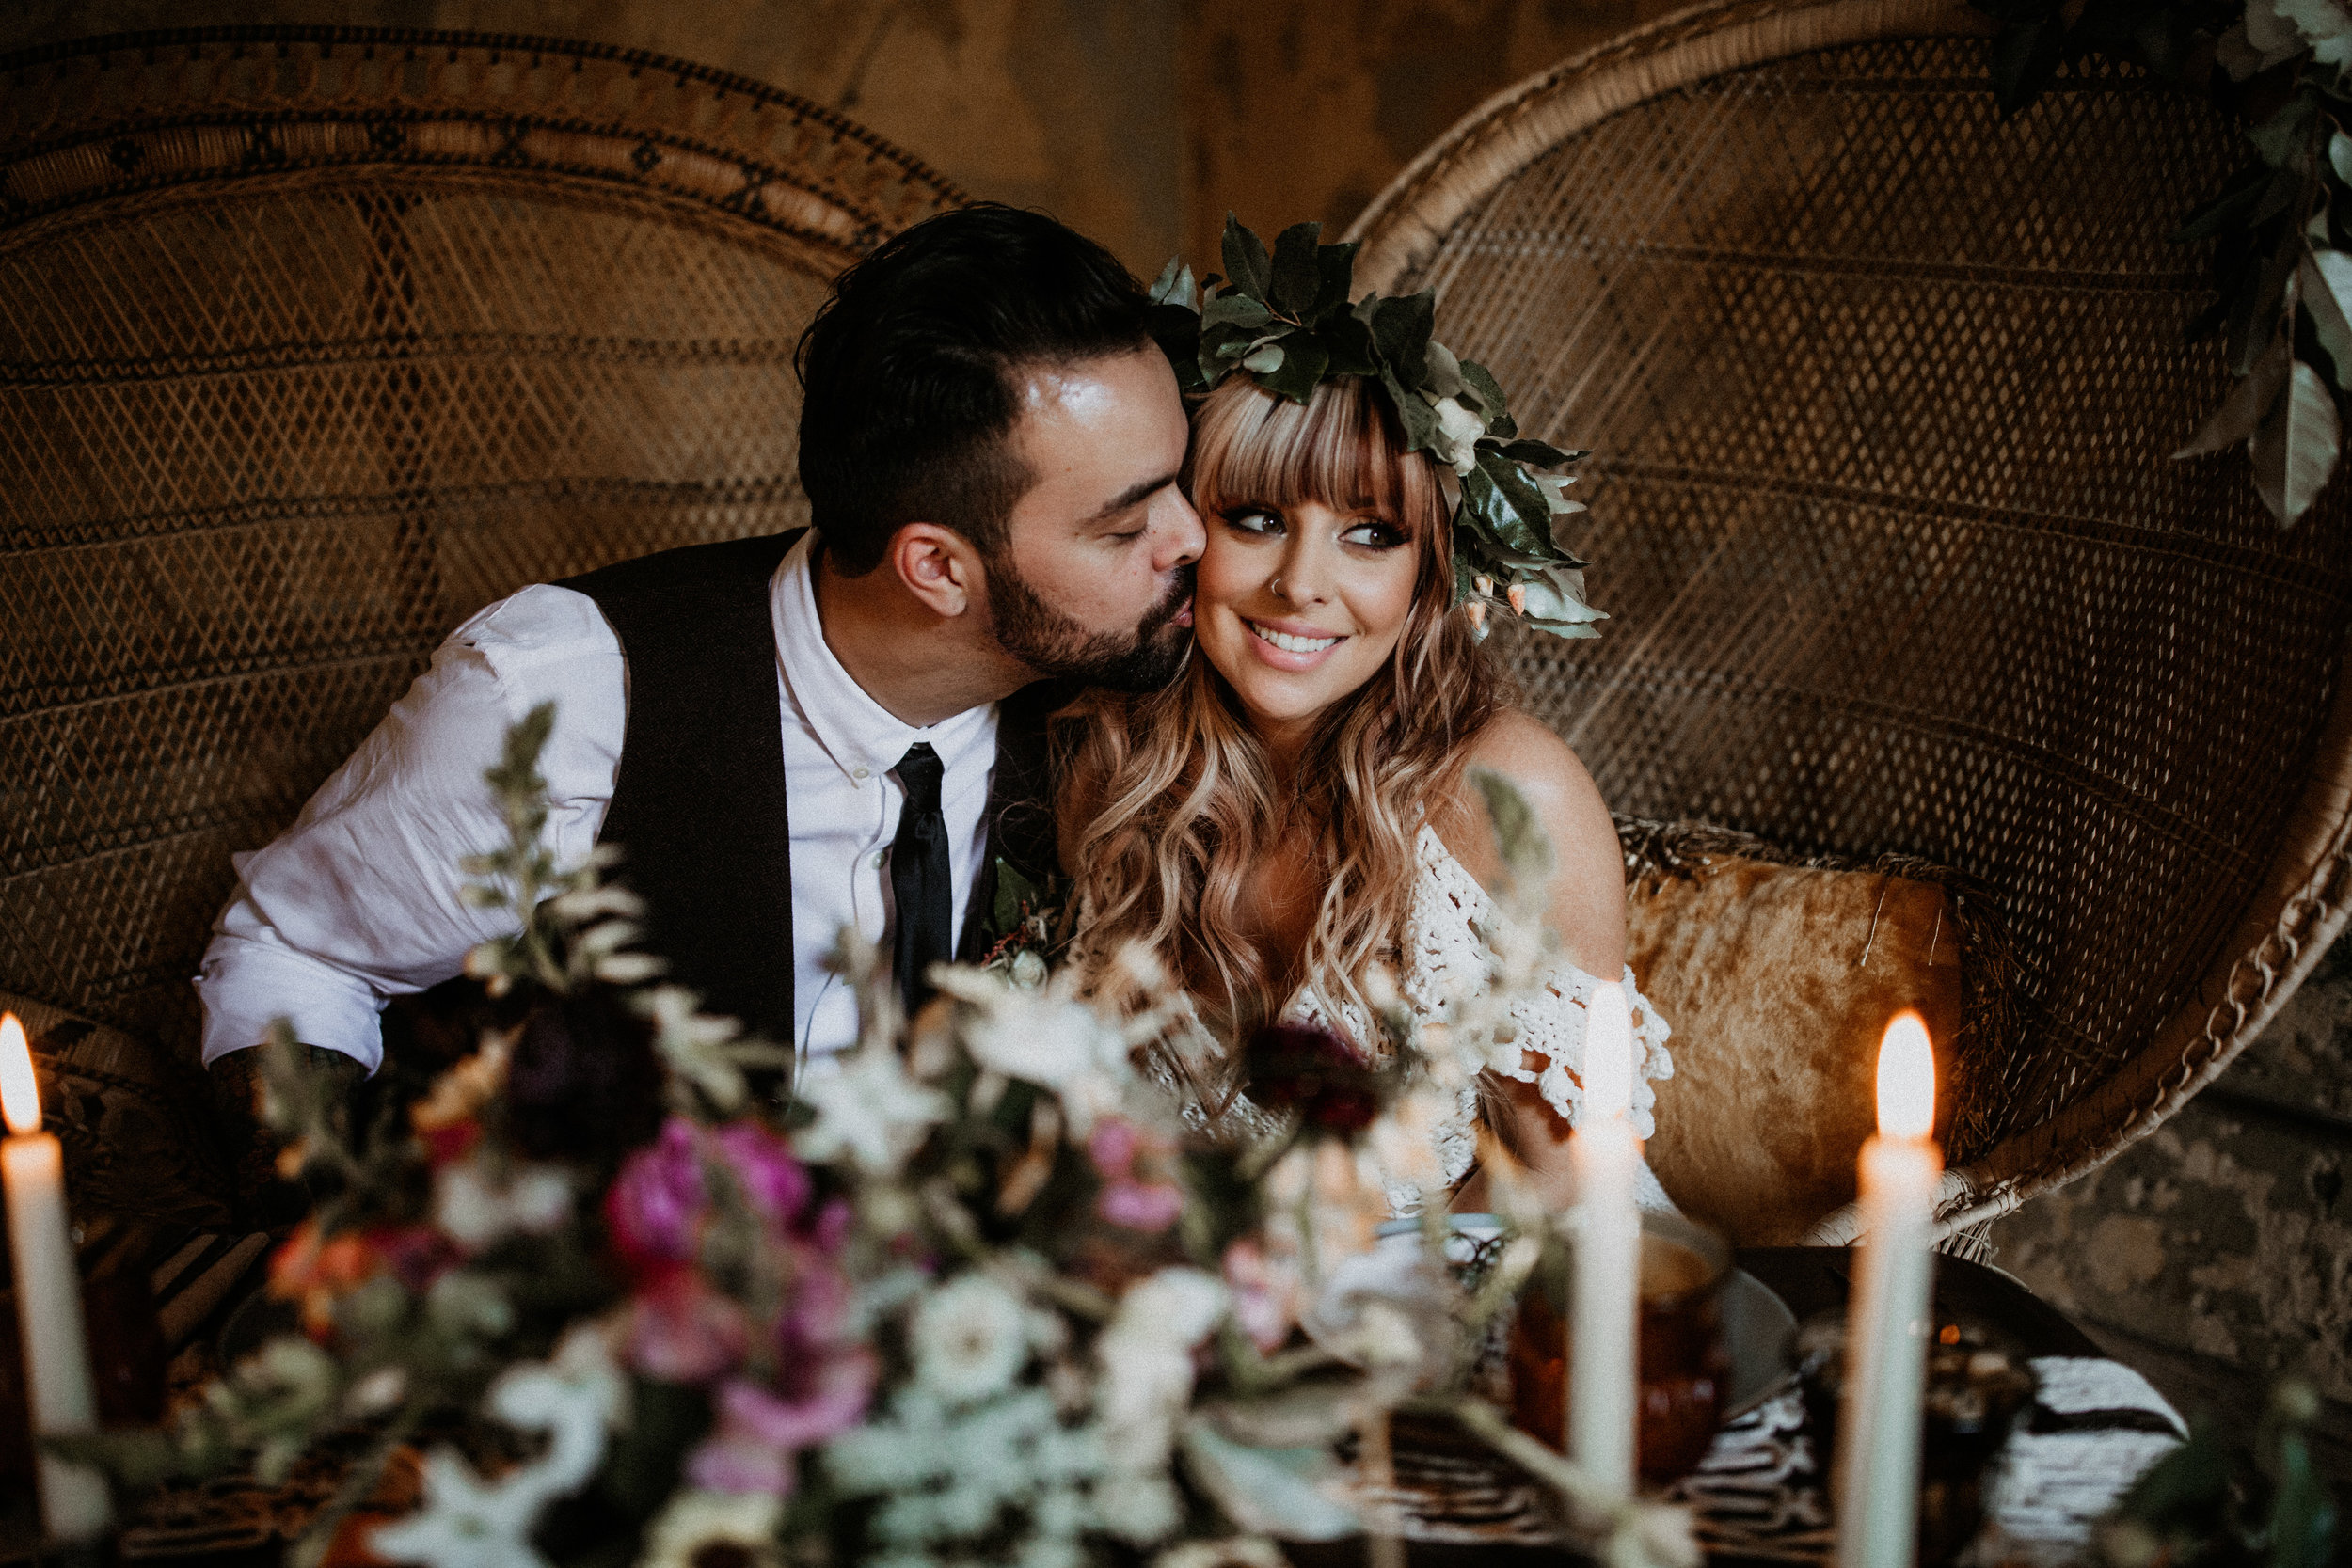 Summer Solstice - Photography by Will KhouryAs seen in Junebug Weddings